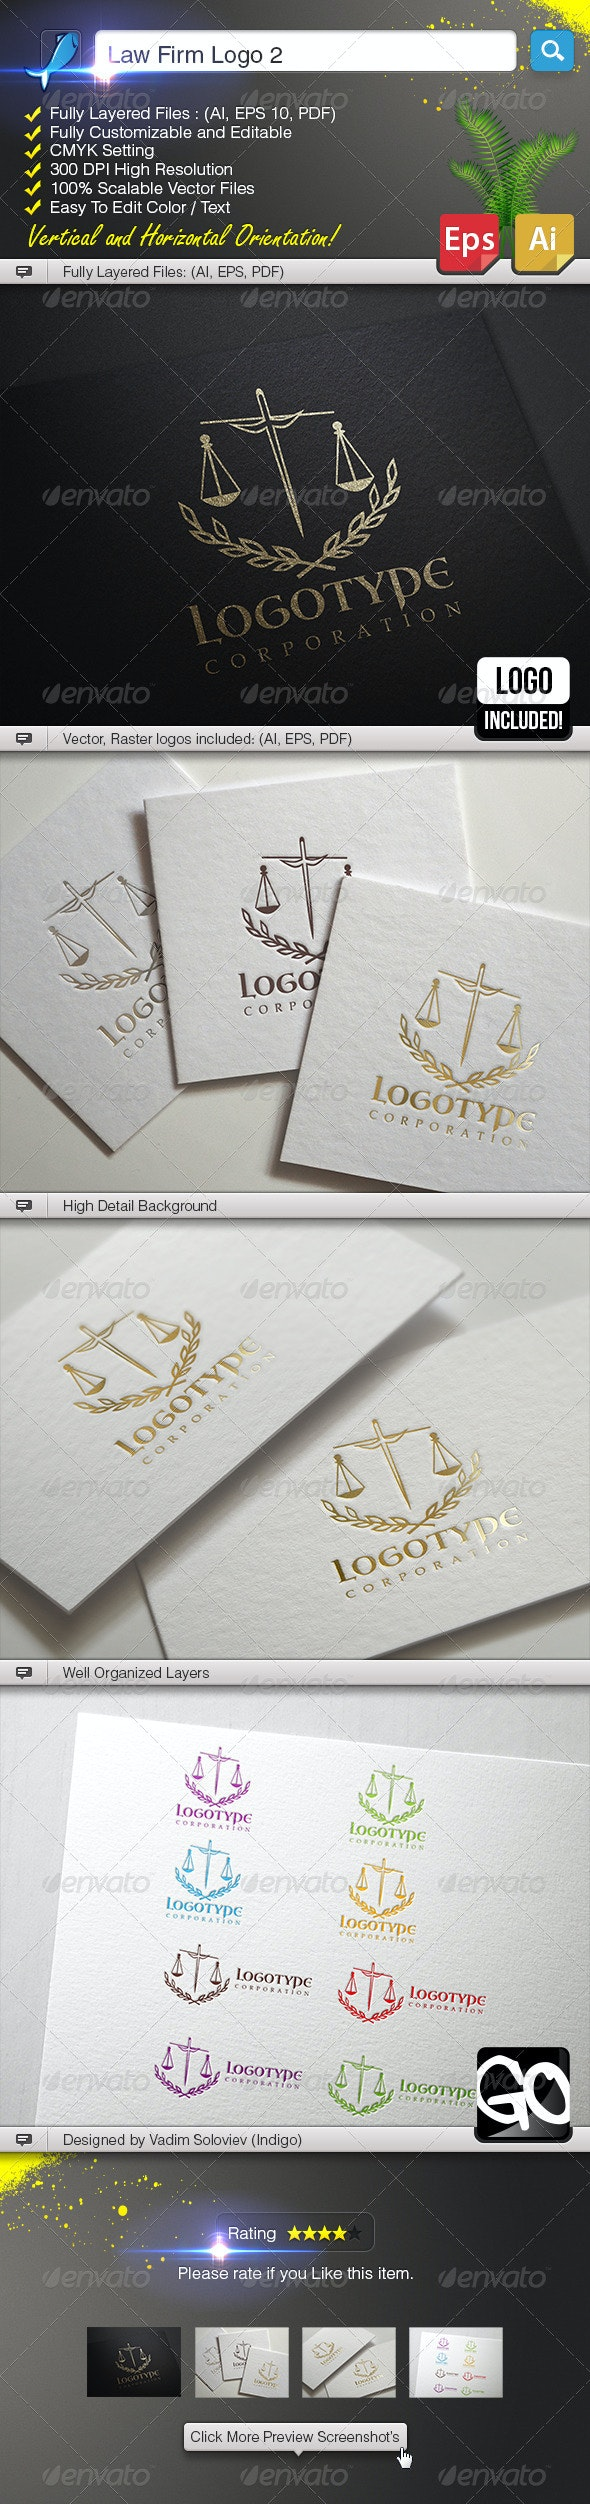 Law Firm Logo 2 - Crests Logo Templates